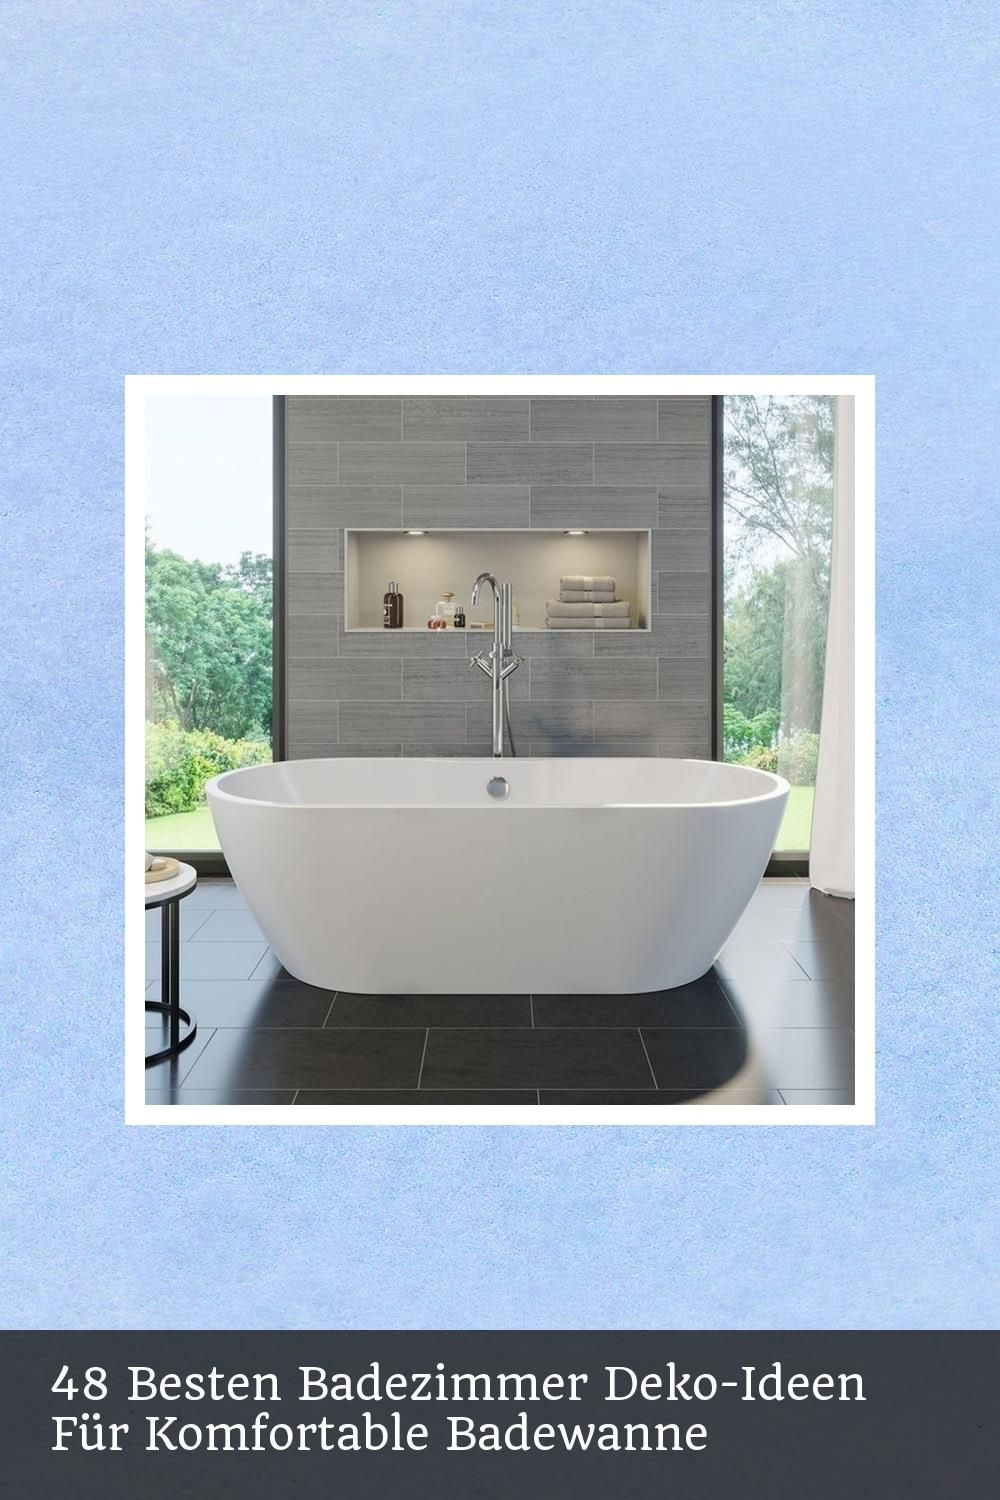 Topic 48 Besten Badezimmer Deko Ideen Fur Komfortable Badewanne 48 Bath Bathroom Best Comfortable Decorating For Badezimmer Deko Badezimmer Badewanne